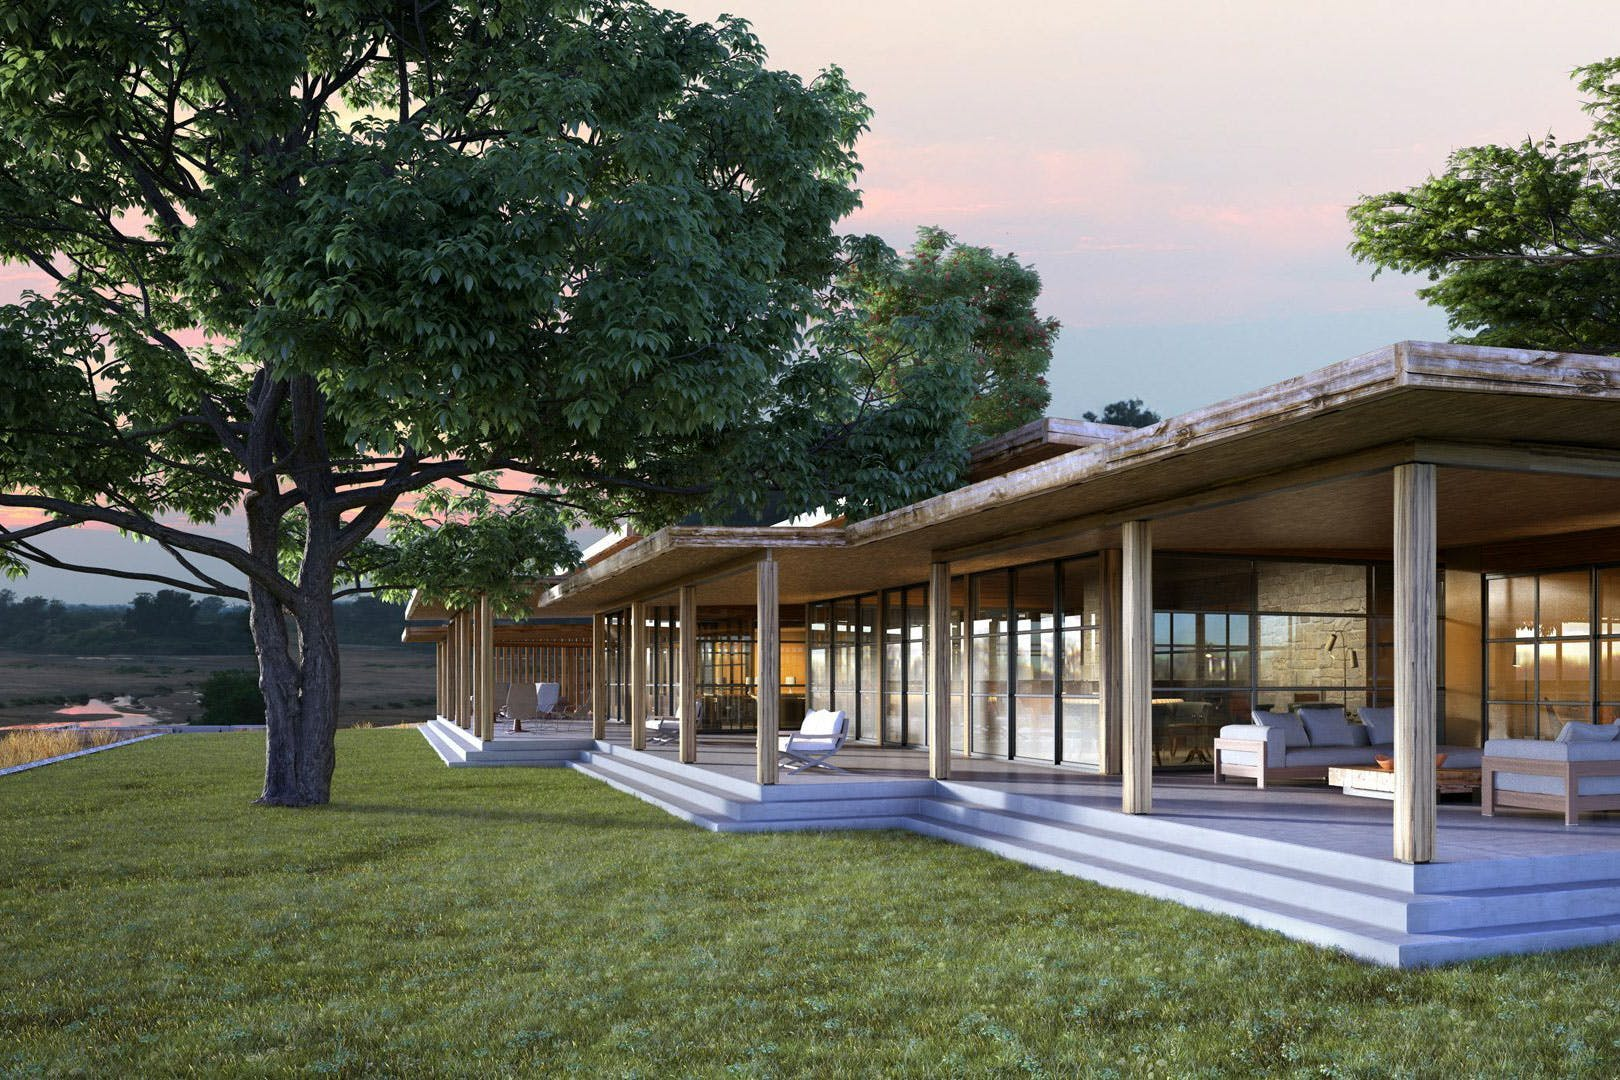 Best new lodges opening in 2019 - tengile lodge